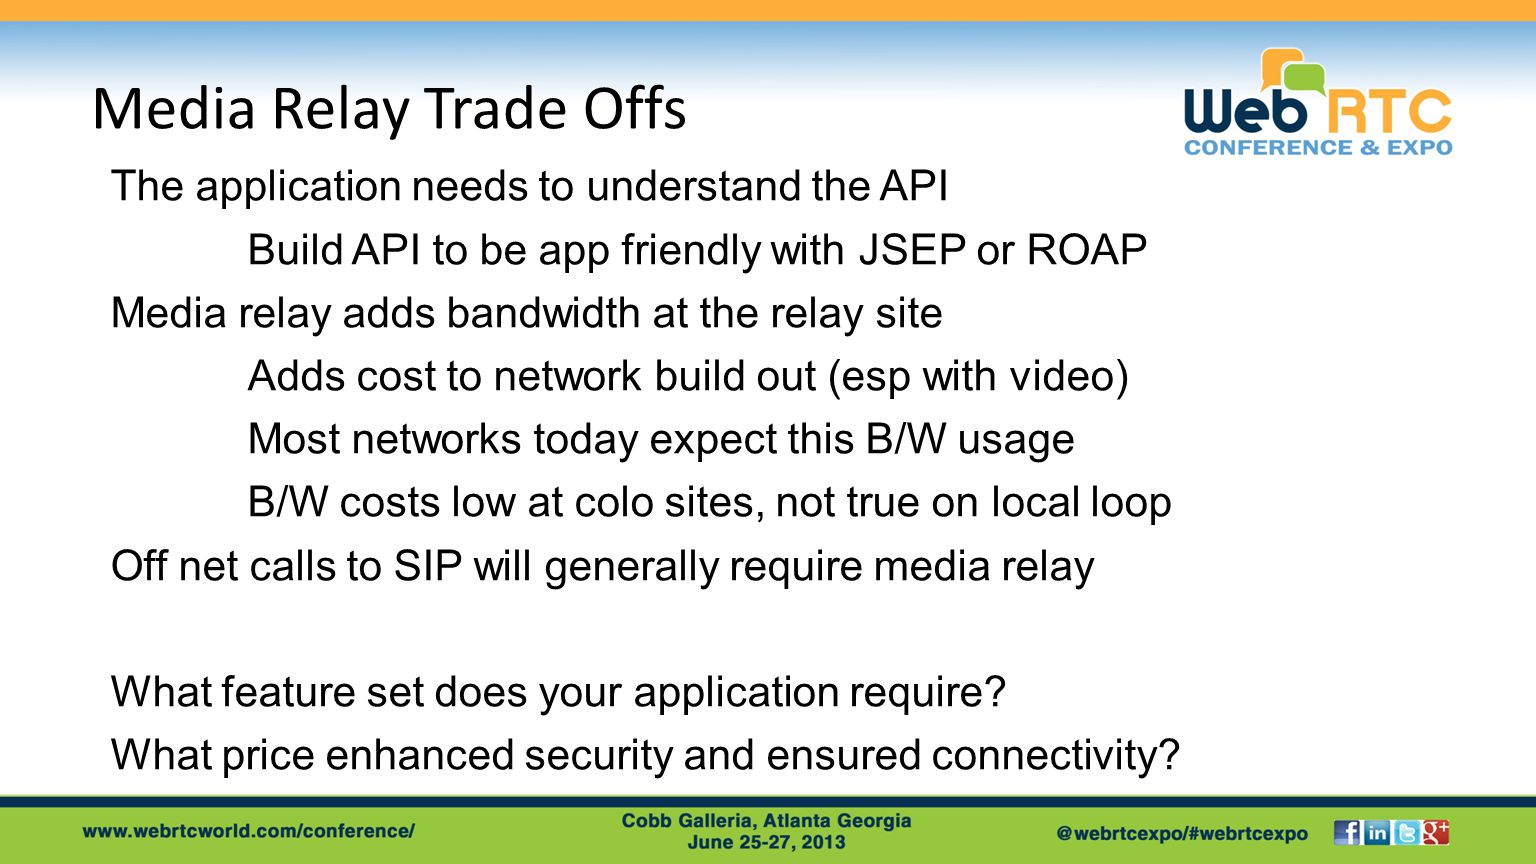 Media Relay Trade Offs The application needs to understand the API Build API to be app friendly with JSEP or ROAP Media relay adds bandwidth at the relay site Adds cost to network build out (esp with video) Most networks today expect this B/W usage B/W costs low at colo sites, not true on local loop Off net calls to SIP will generally require media relay What feature set does your application require.